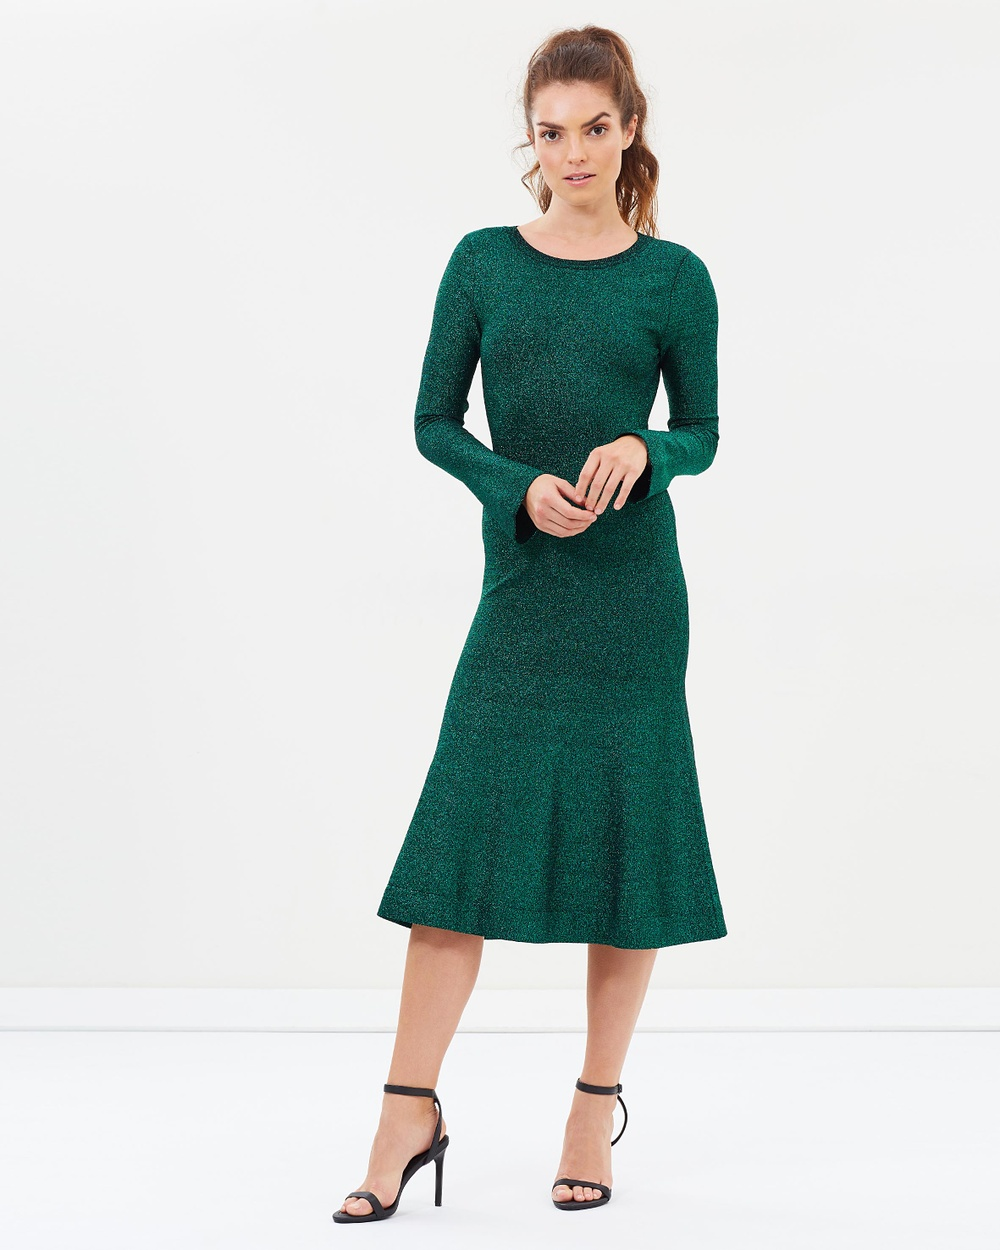 Ginger & Smart Allude Metallic Knit Dress Bodycon Dresses Emerald Allude Metallic Knit Dress